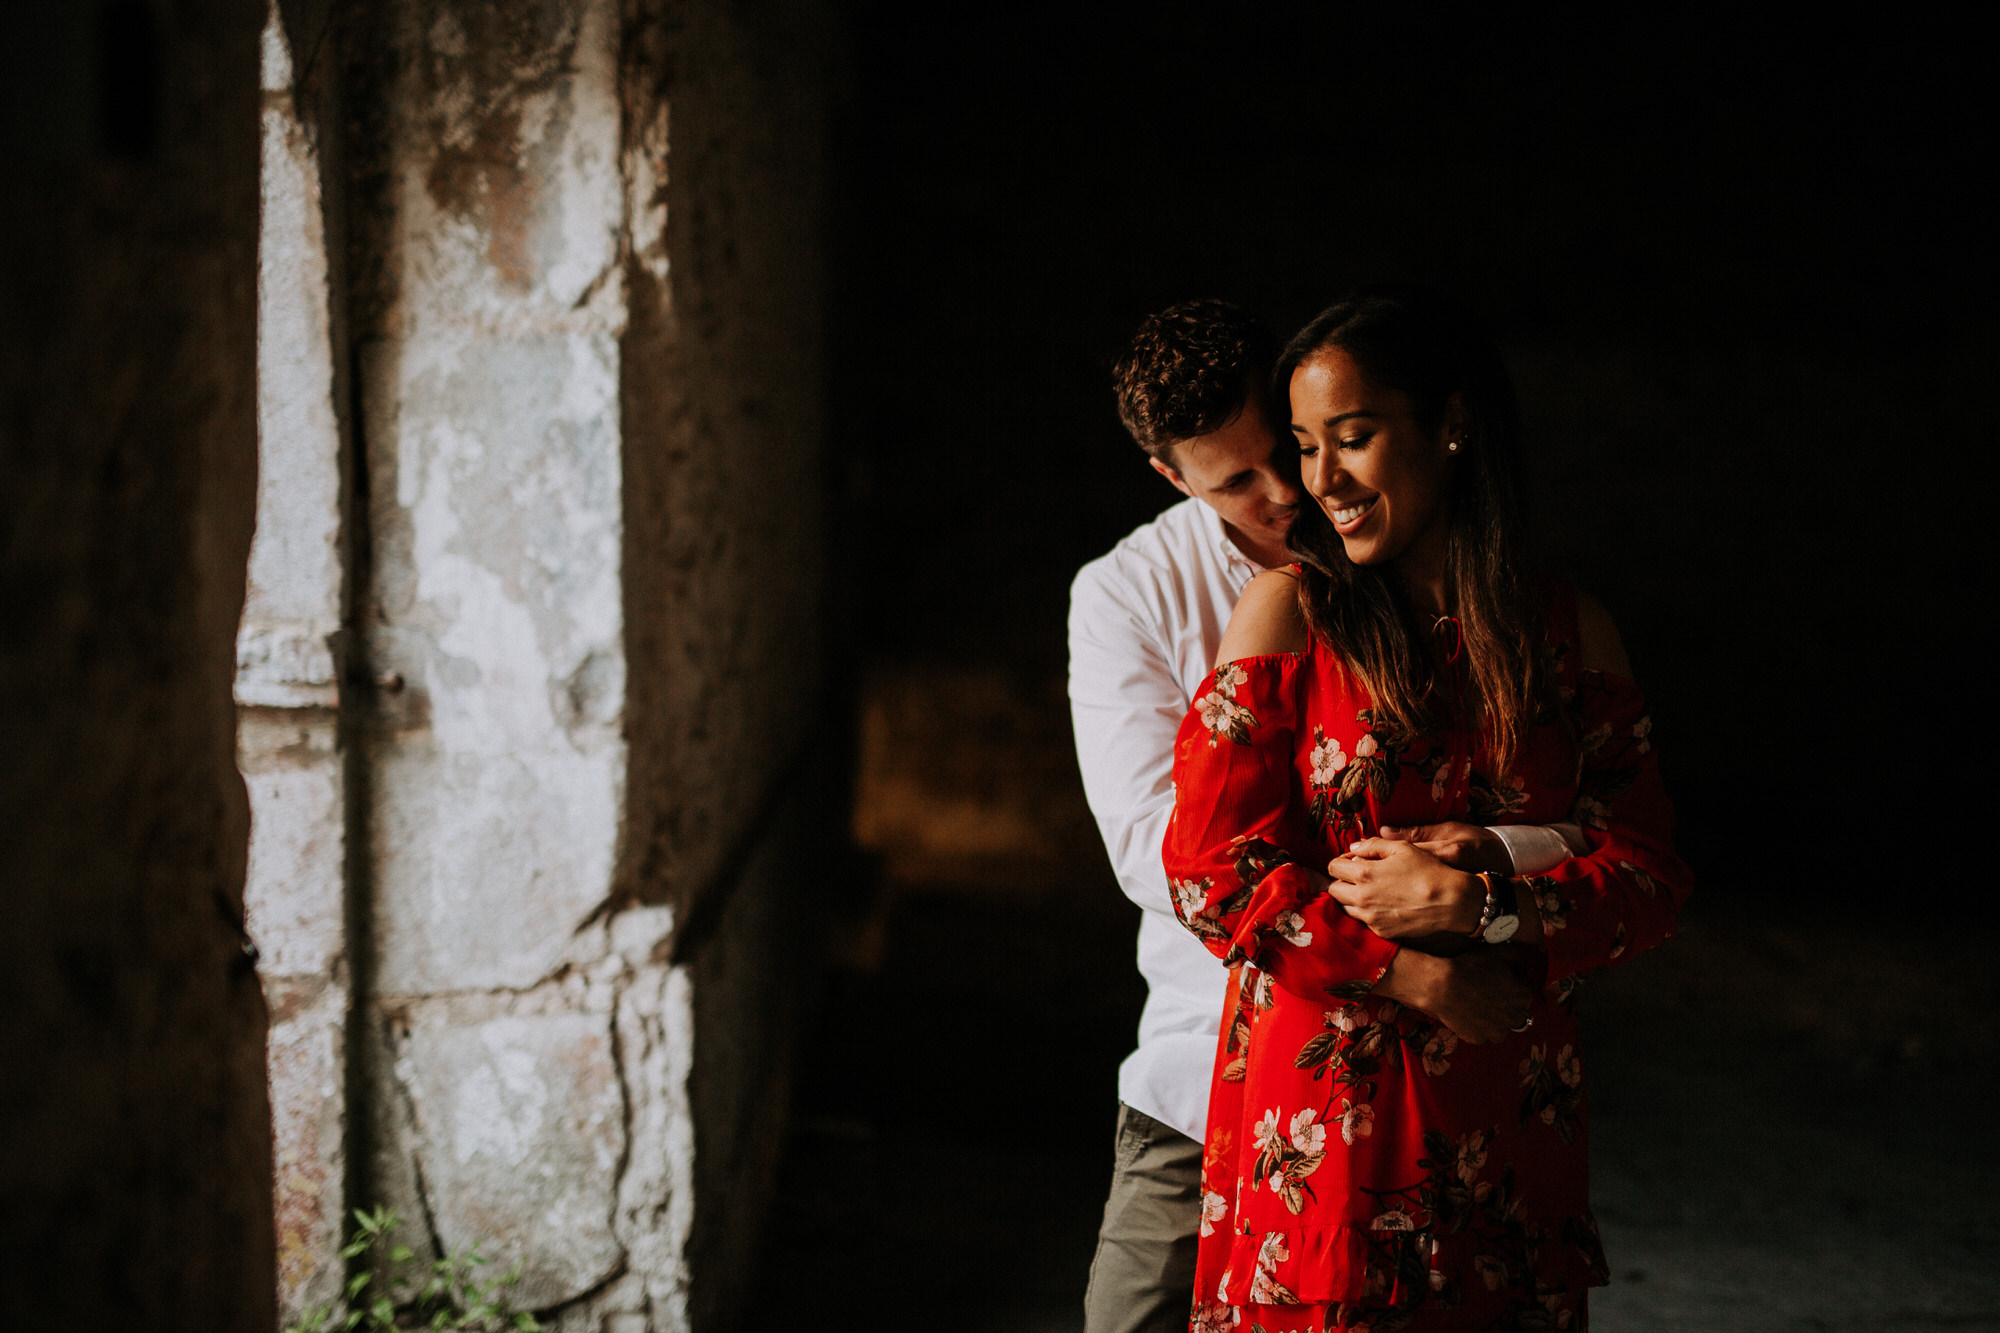 28-sessao-noivado-engagement-love-session-Sintra-lisboa-town-wedding-photography-photographer-natural-best-venue-planner-destination-filipe-santiago-fotografia-lifestyle-documentary